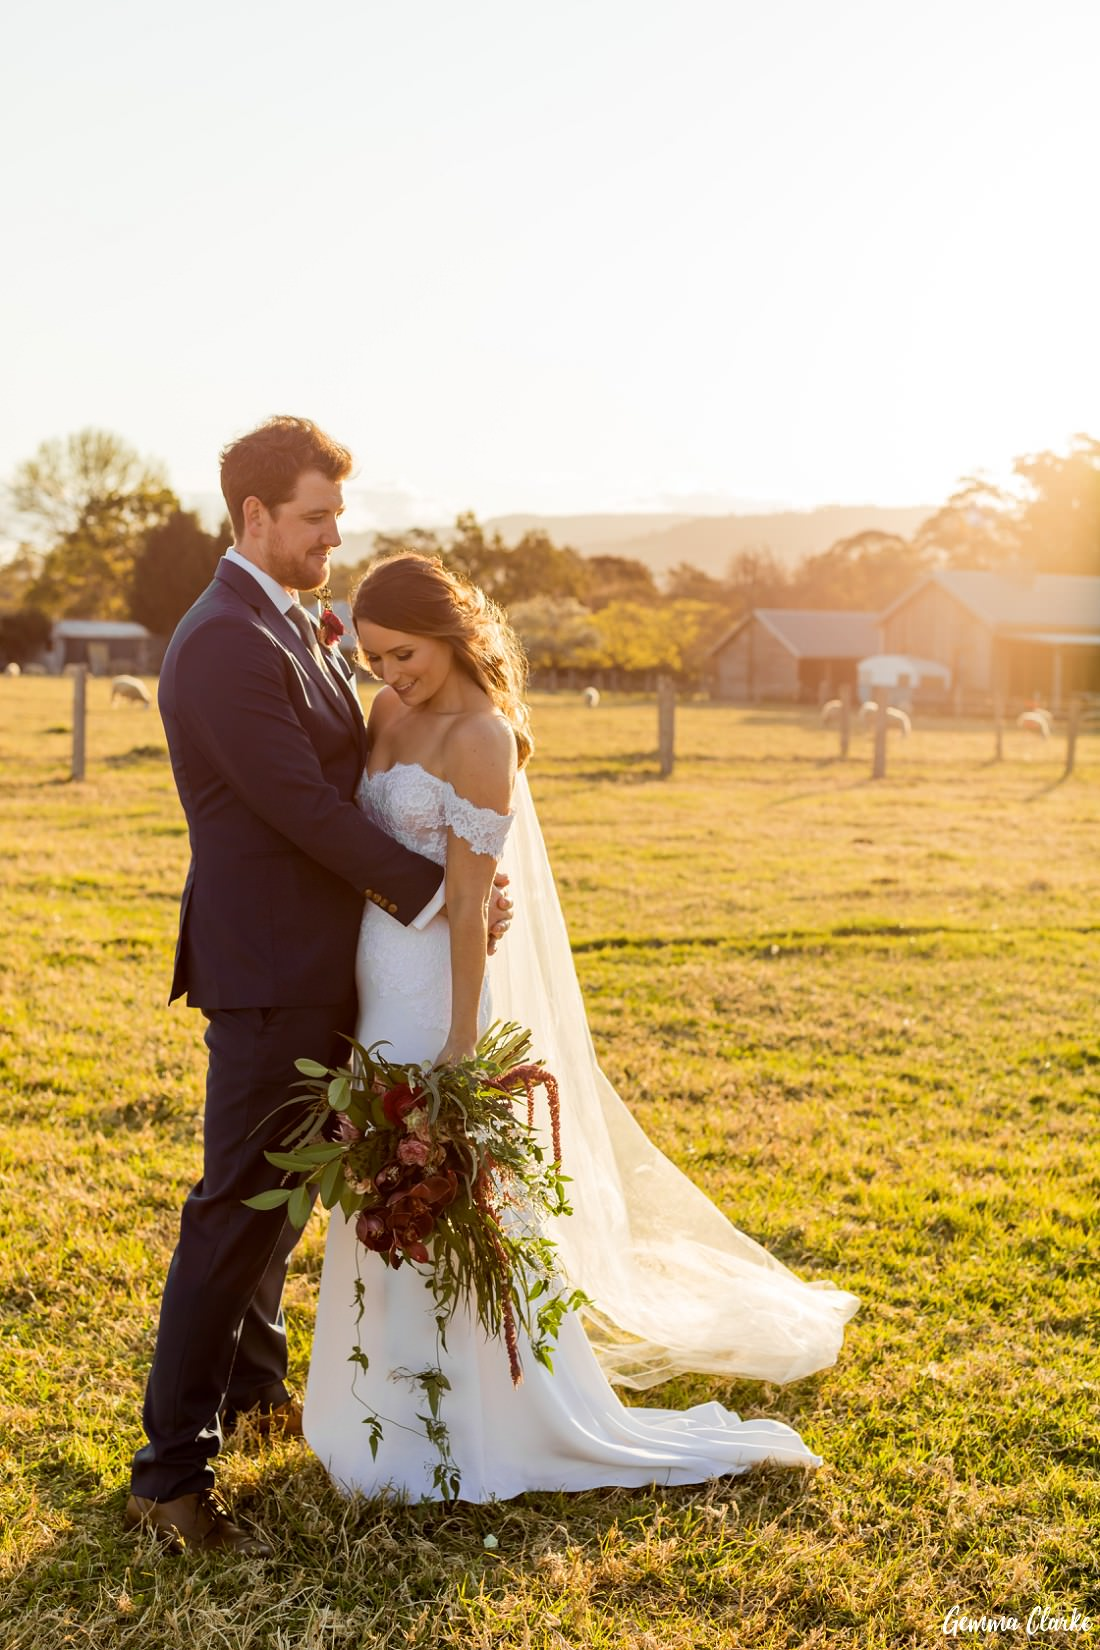 Bride and Groom stand in a country field as the golden sun warms them in their embrace at this Willow Farm Wedding